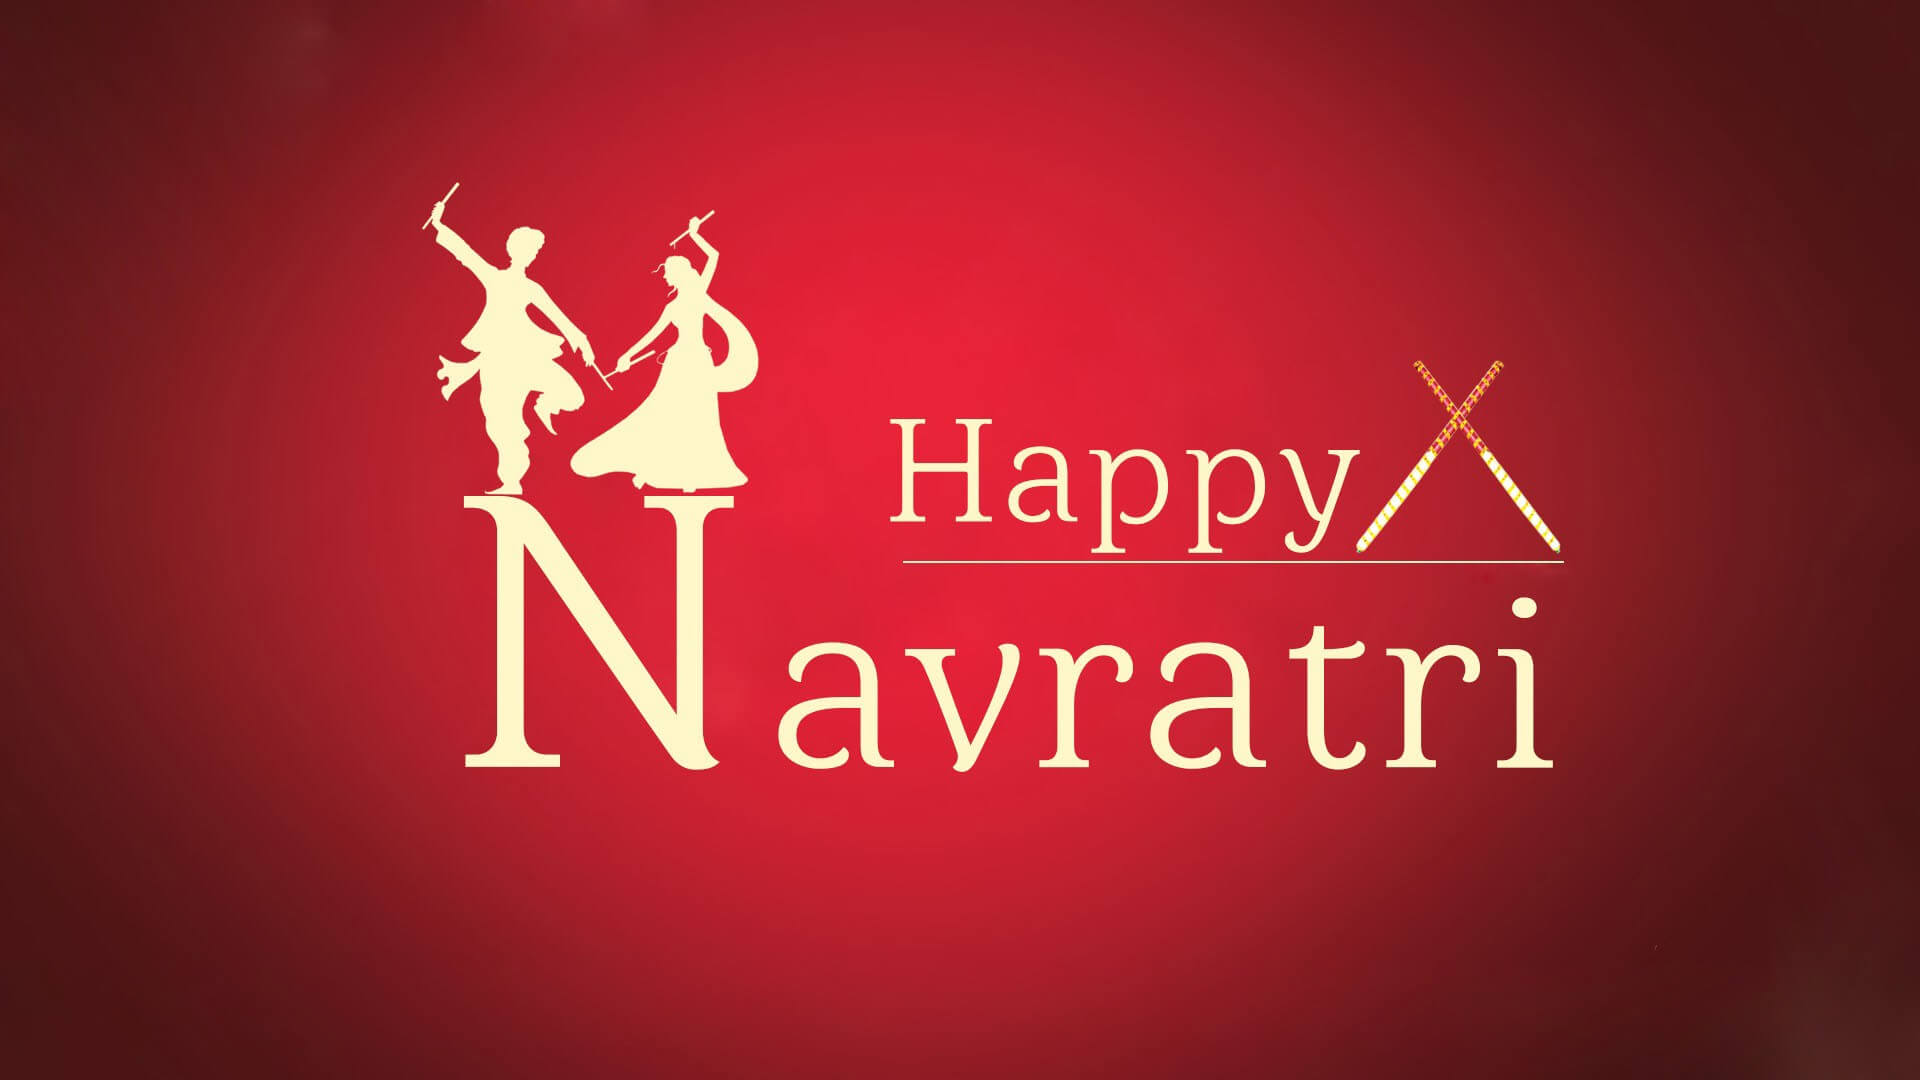 happy navratri 2017 wallpaper